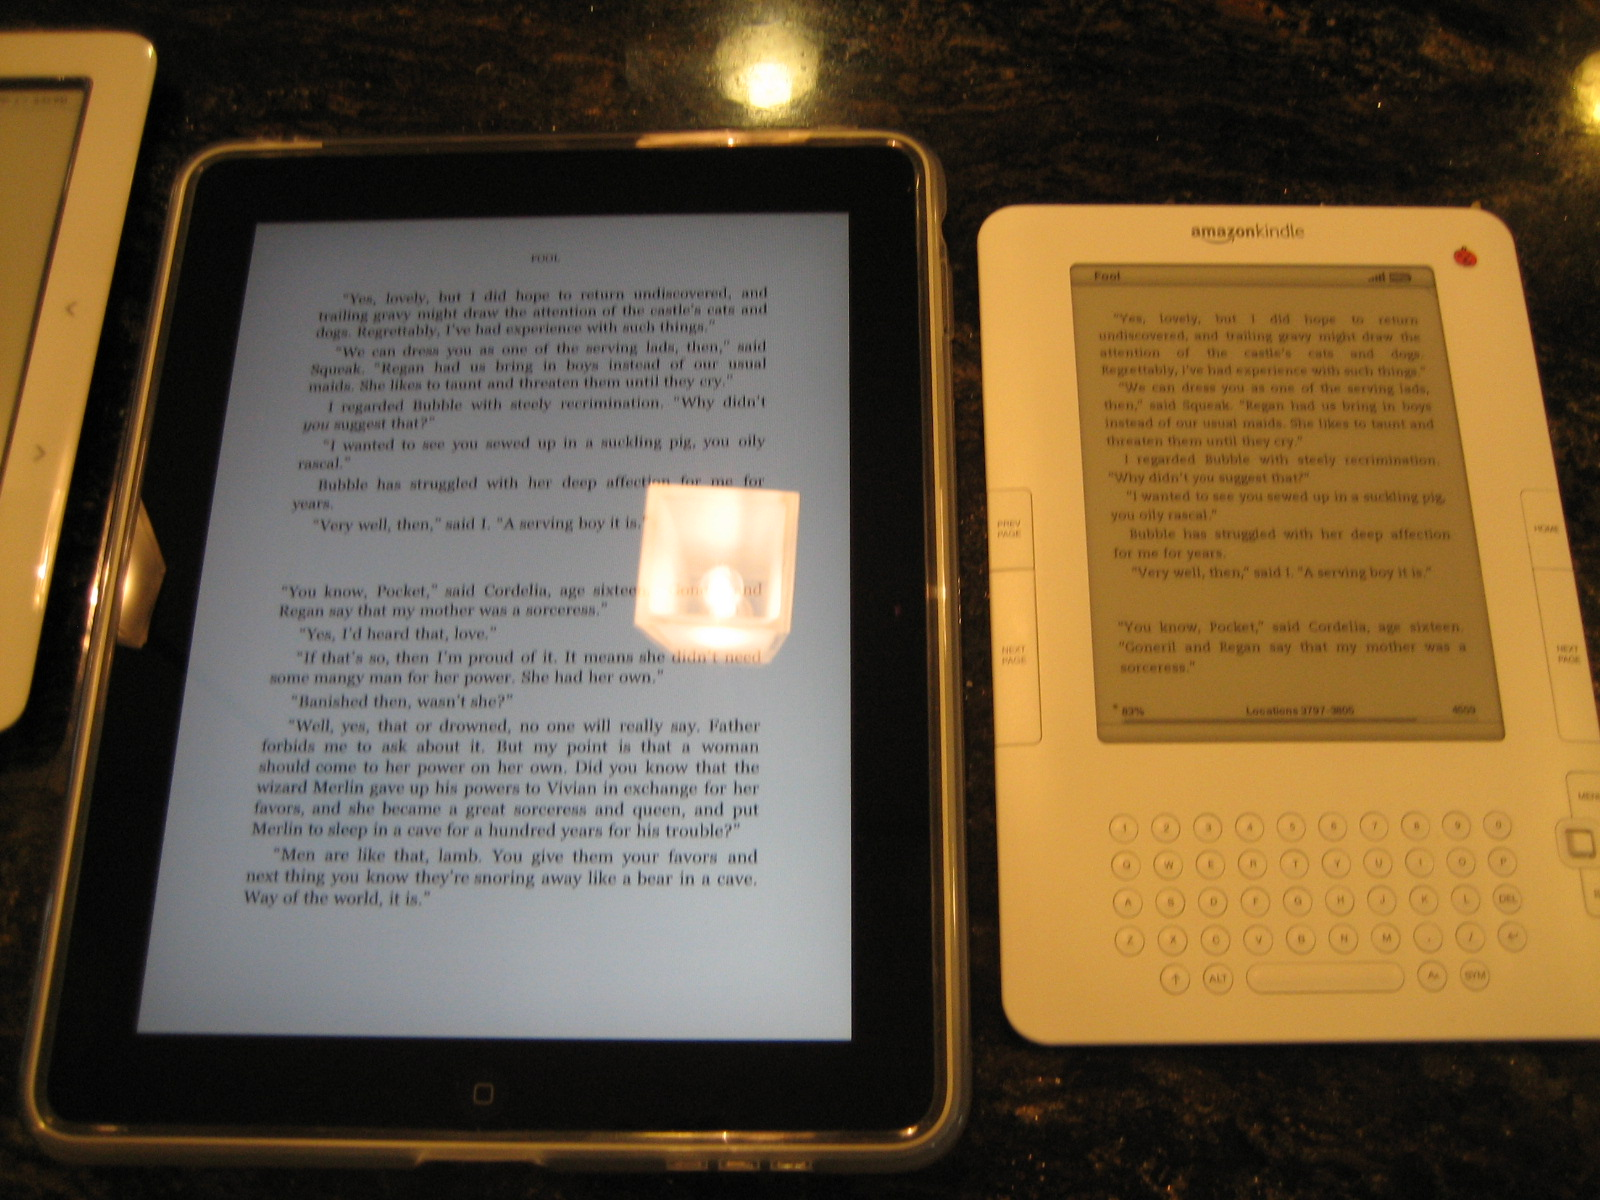 Apple Ipad Vs Kindle: IPad 3G Vs. The Kindle Vs. The Nook